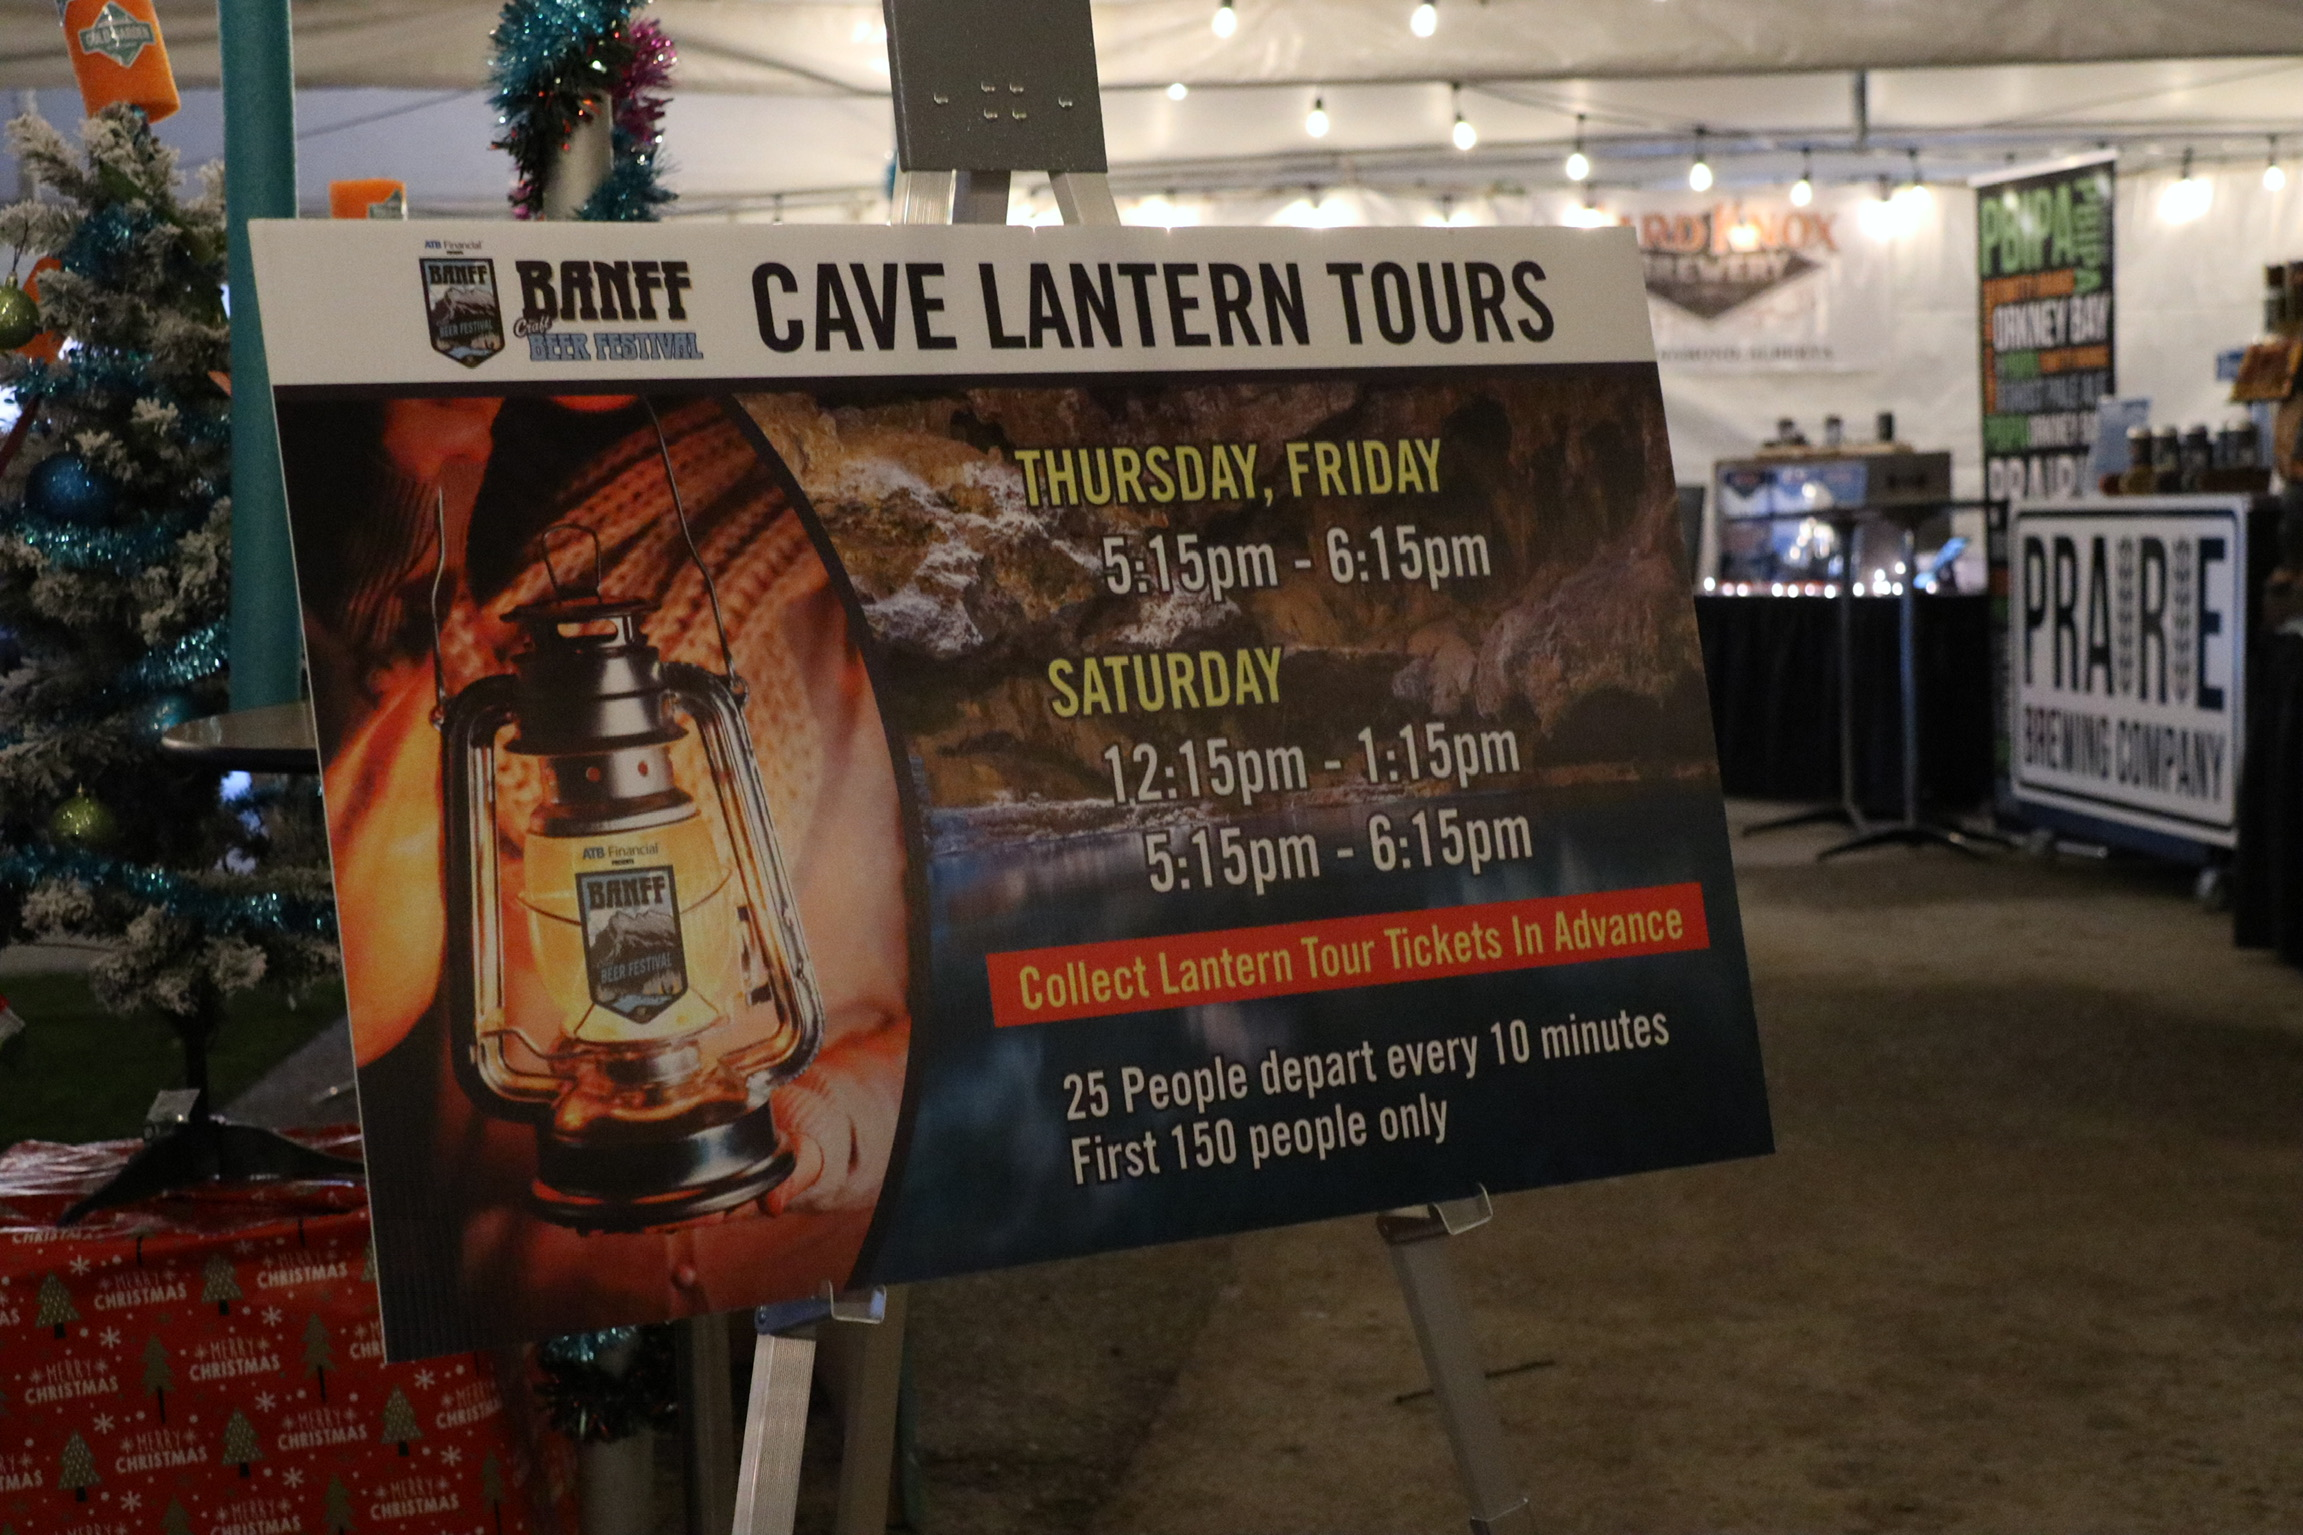 Cave Lantern Tours at the Banff Craft Beer Festival.